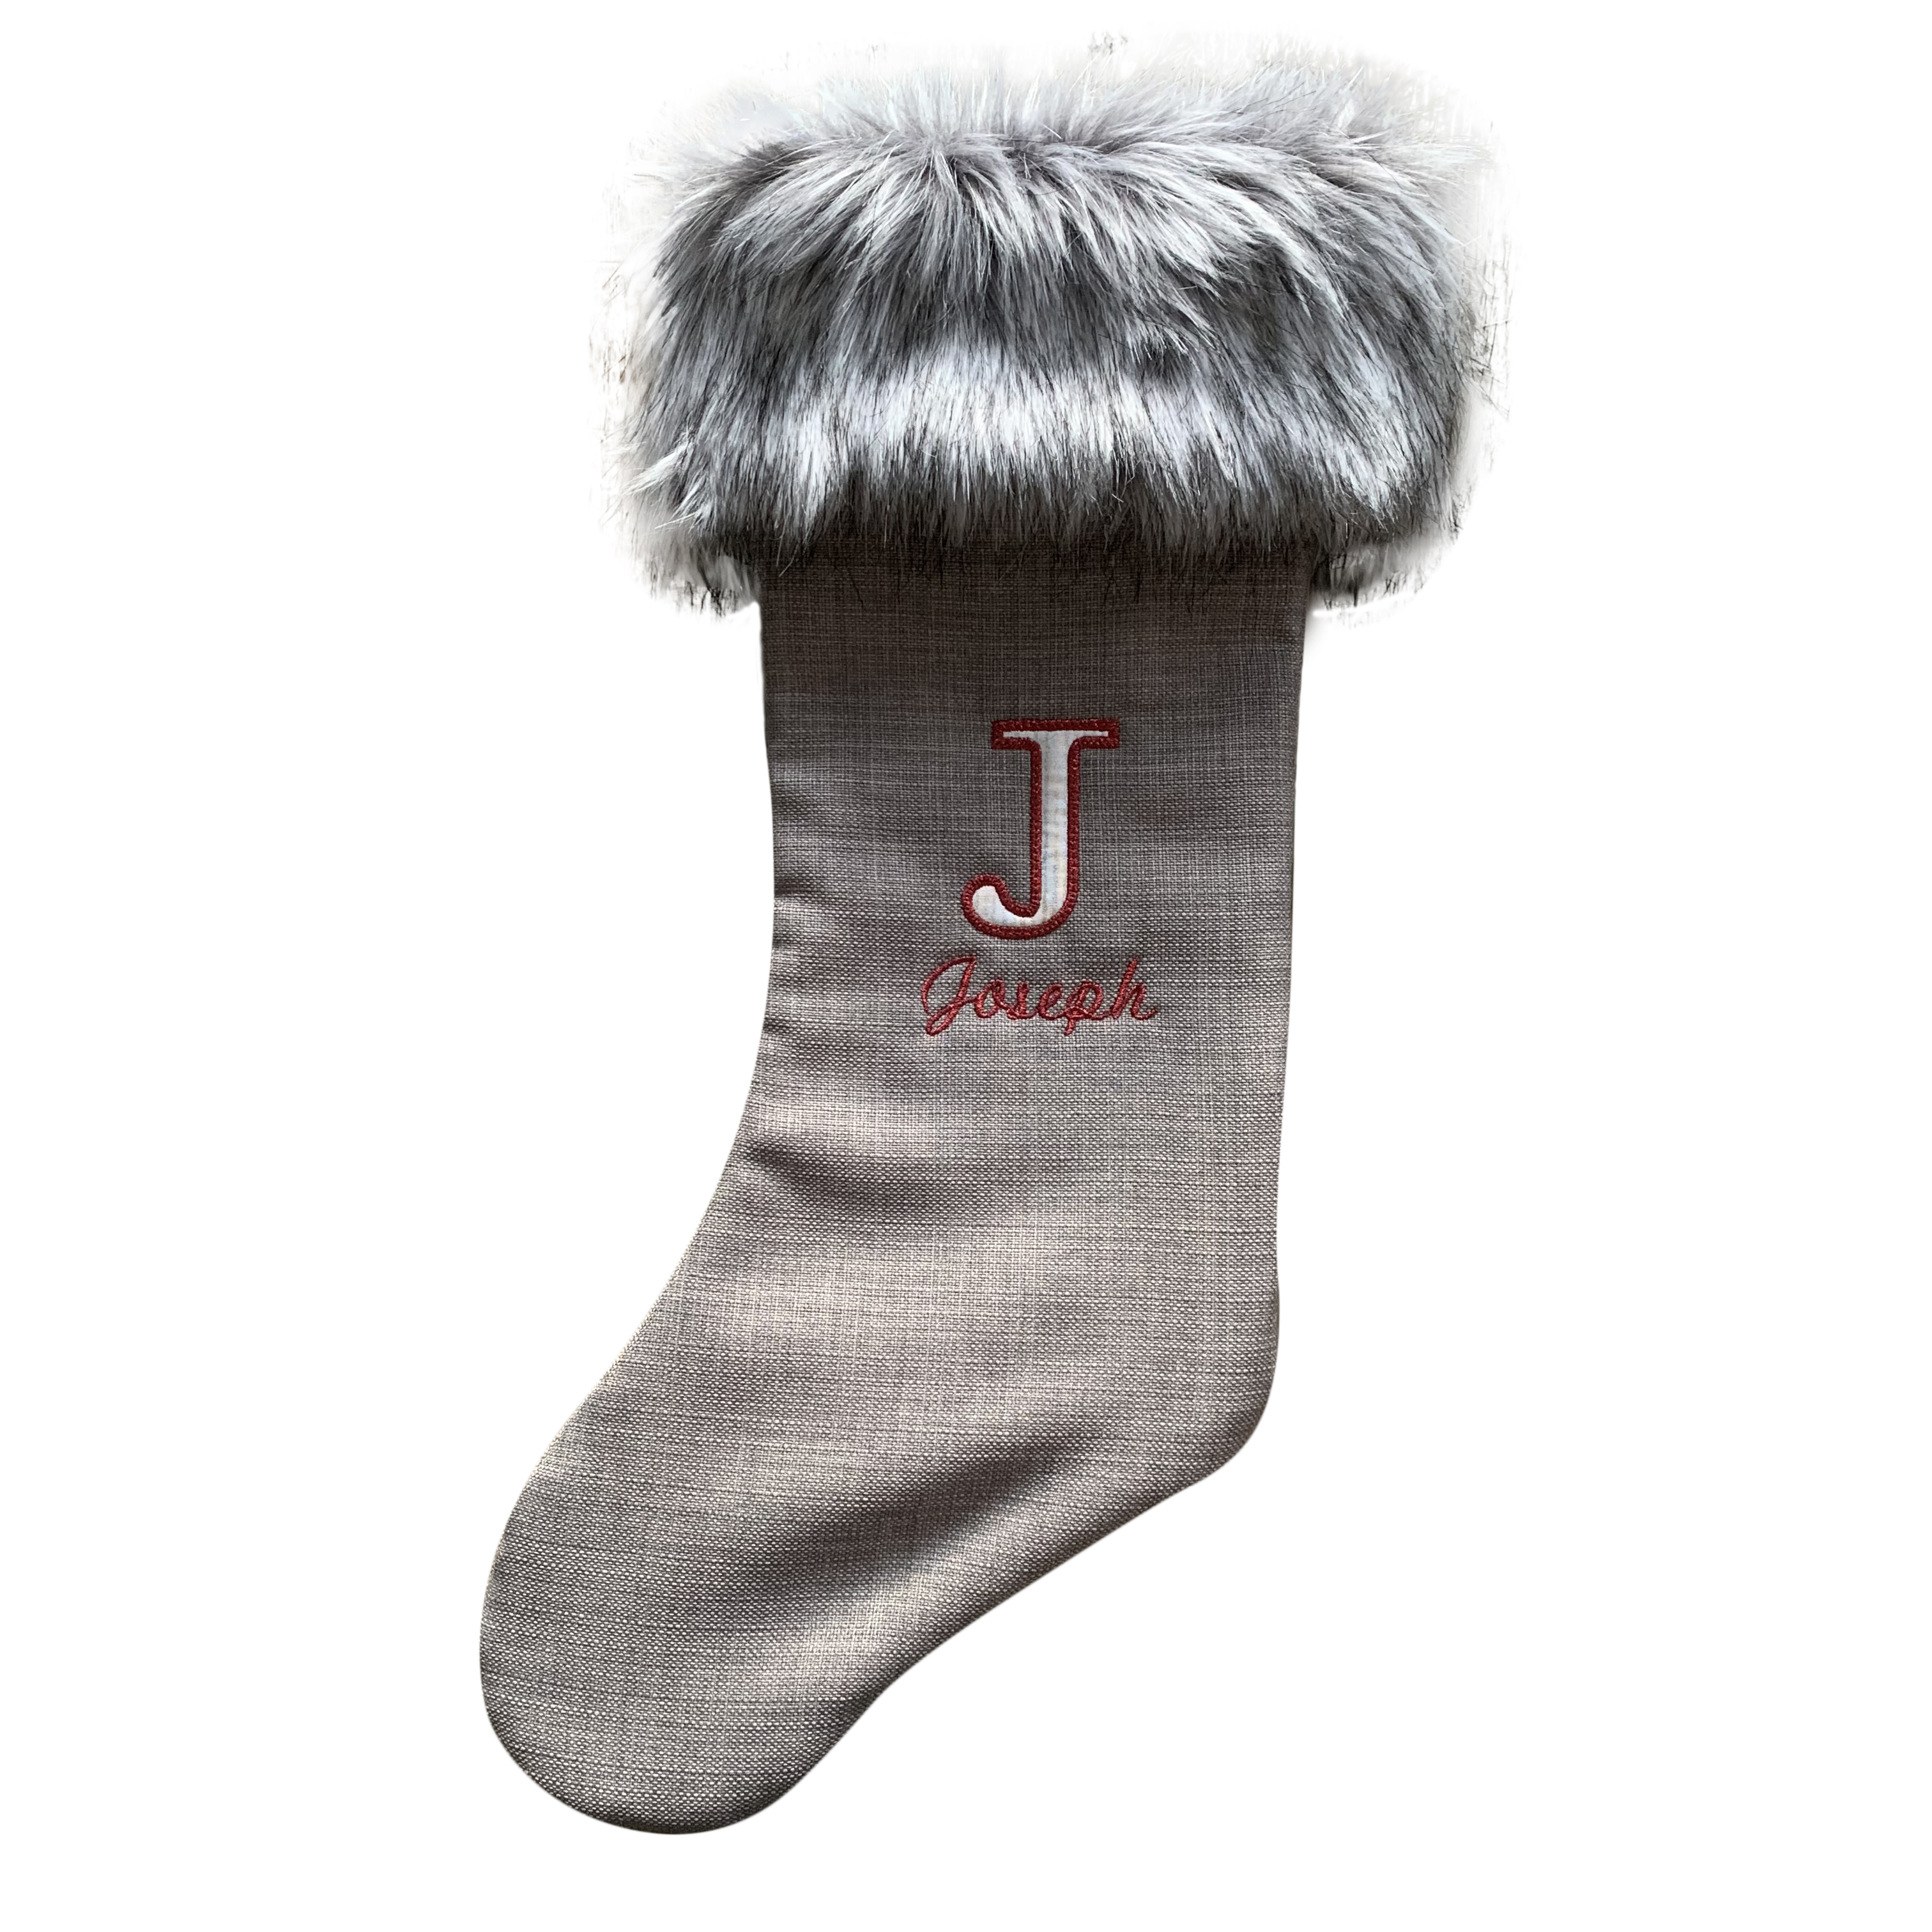 Jajo Uk hristmas stocking filler ideas